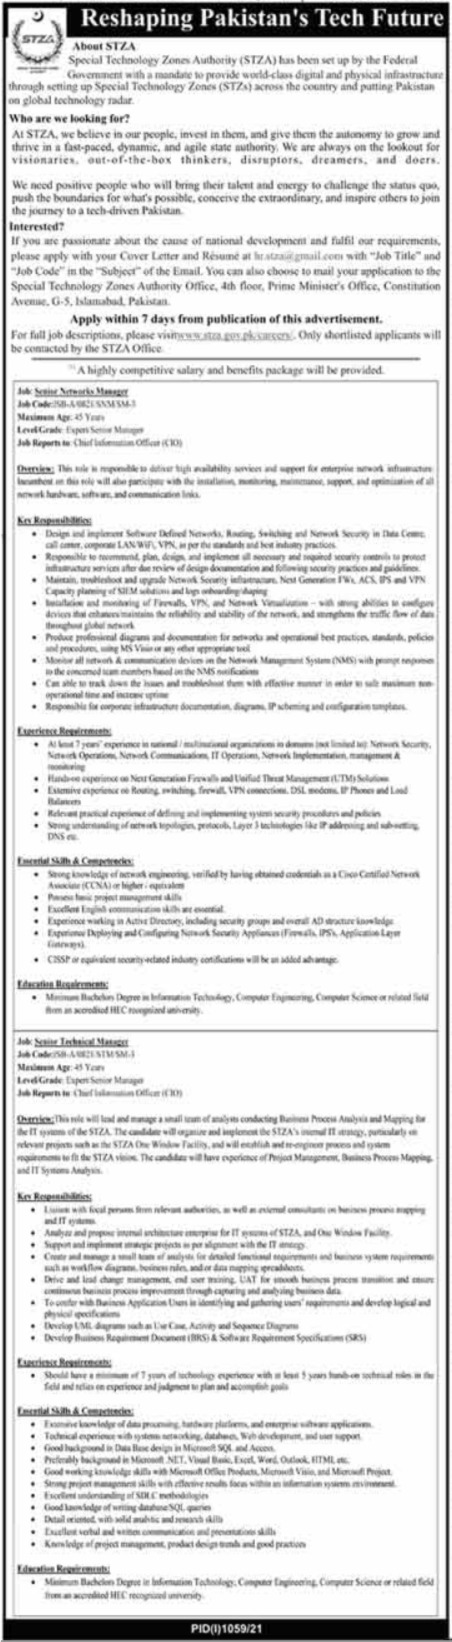 Jobs in Special Technology Zon Authority STZA